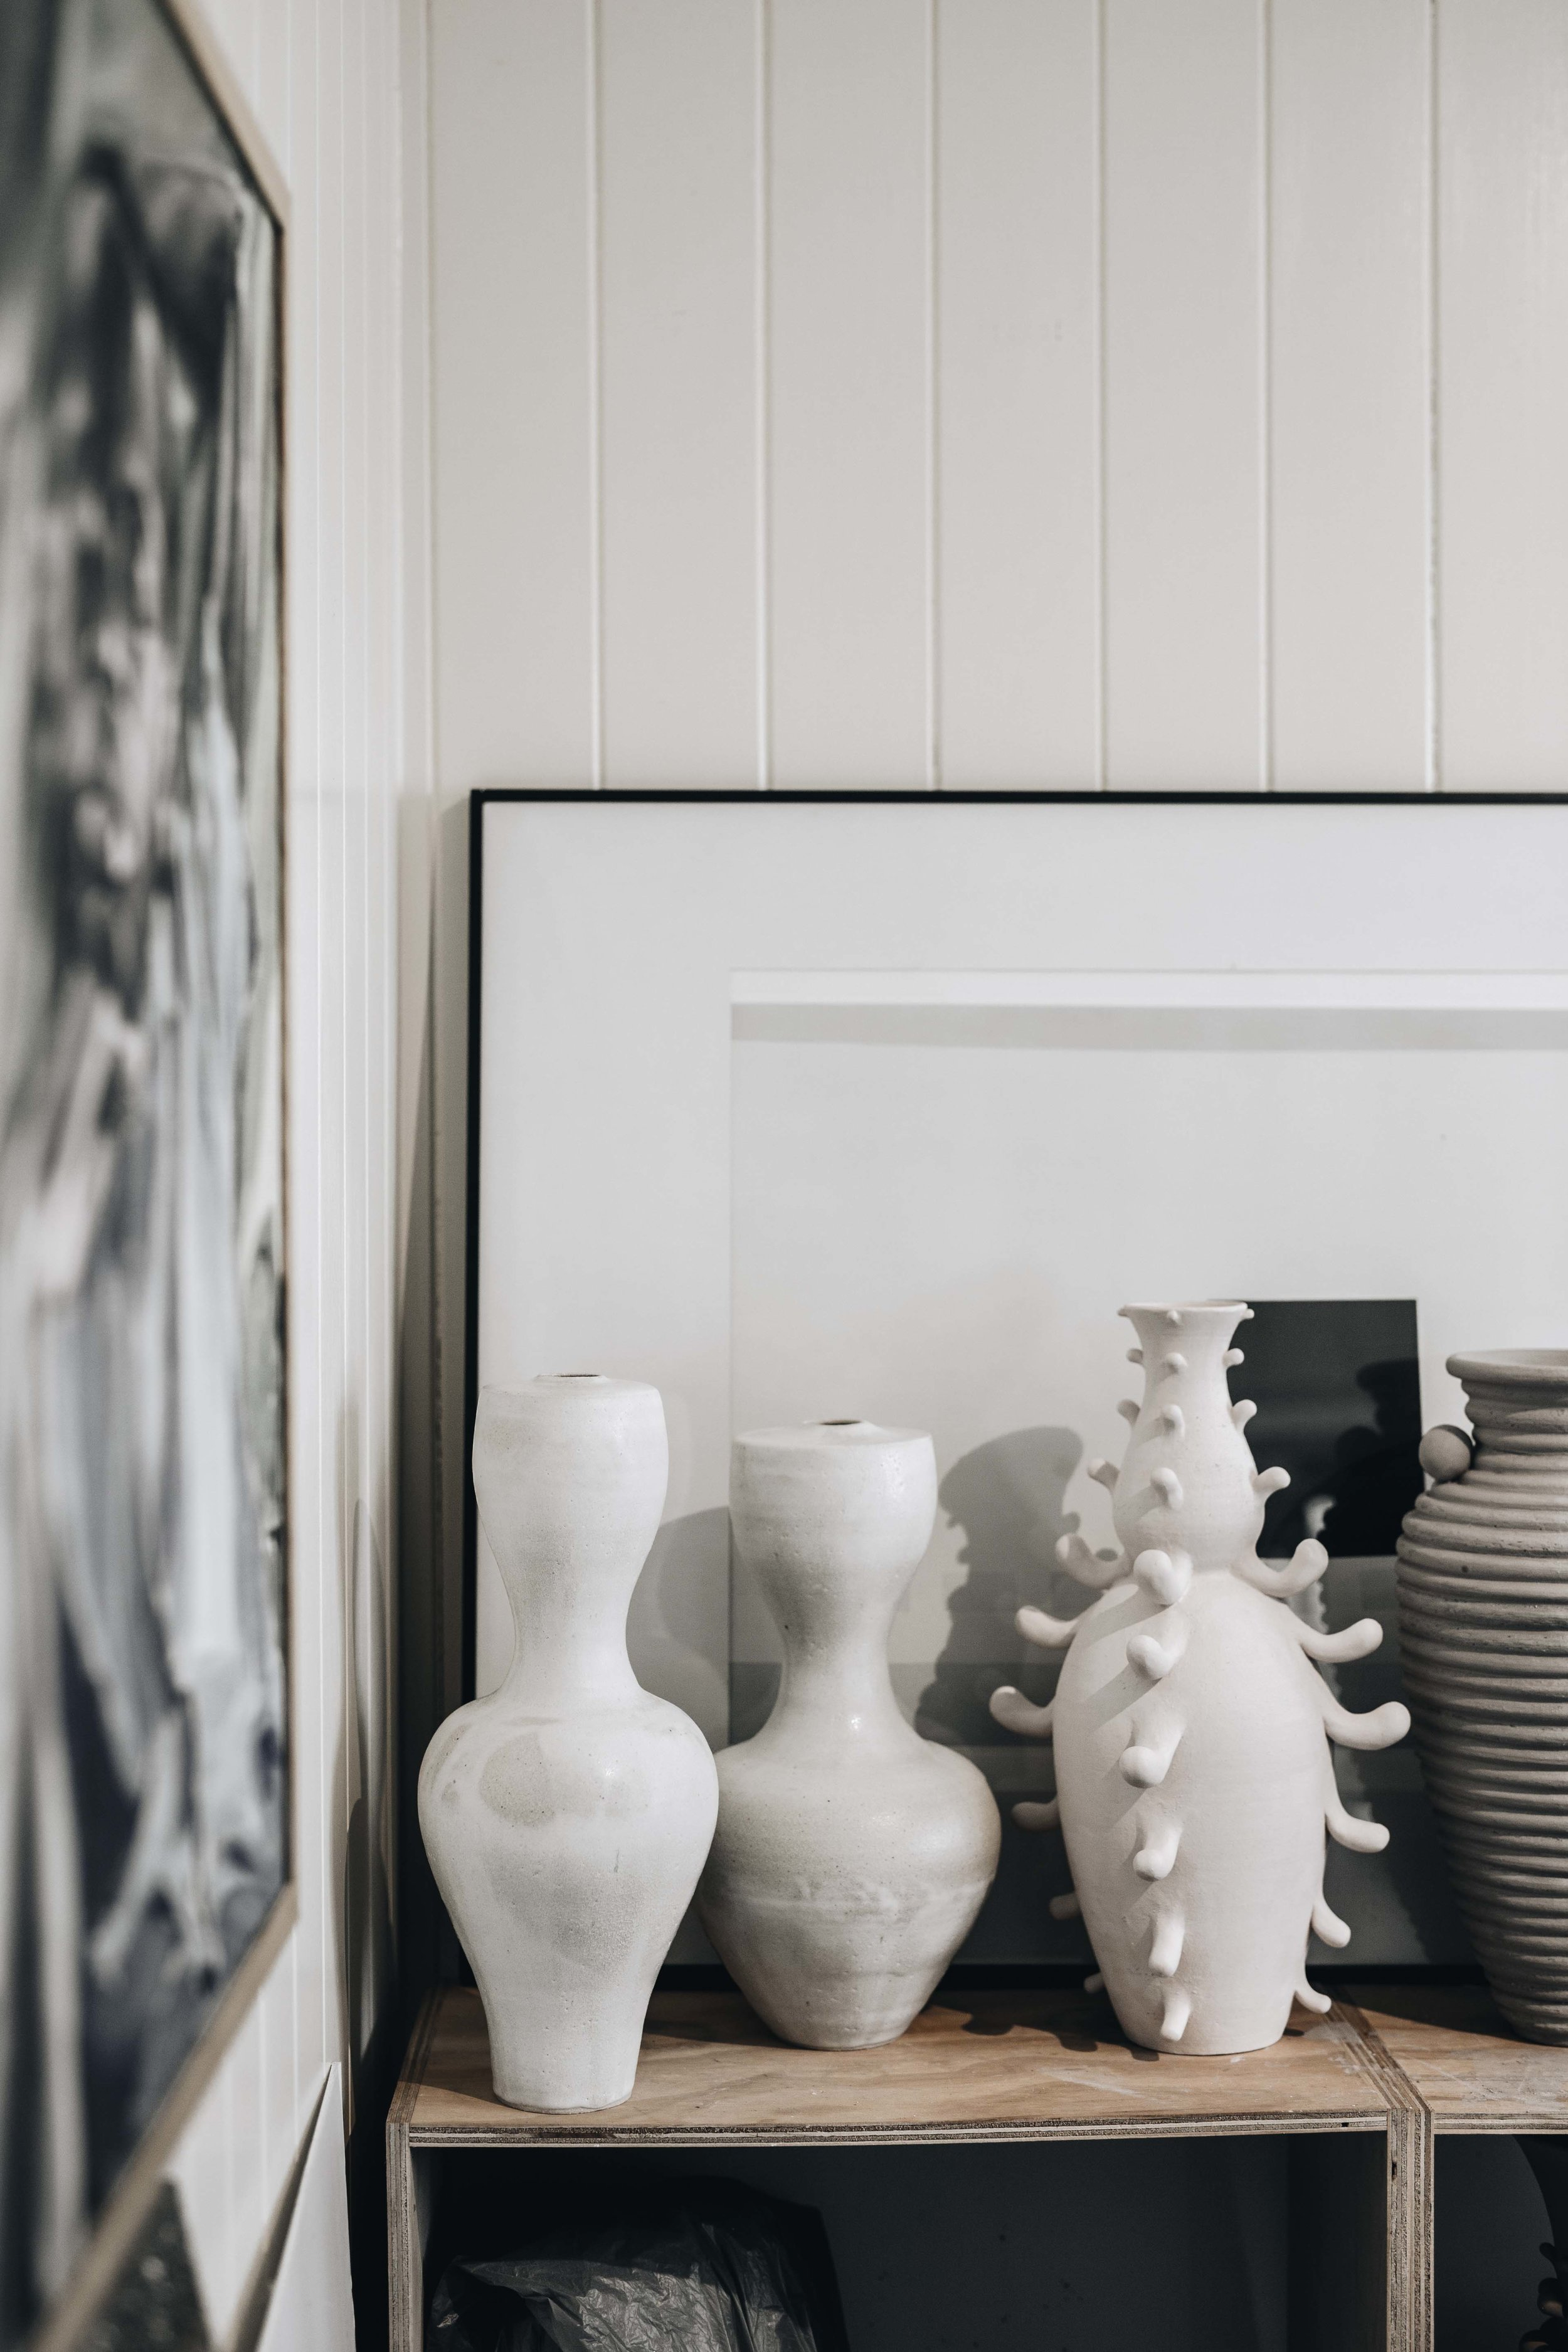 A collection of vessels by Nicolette sitting on the shelves in her studio.